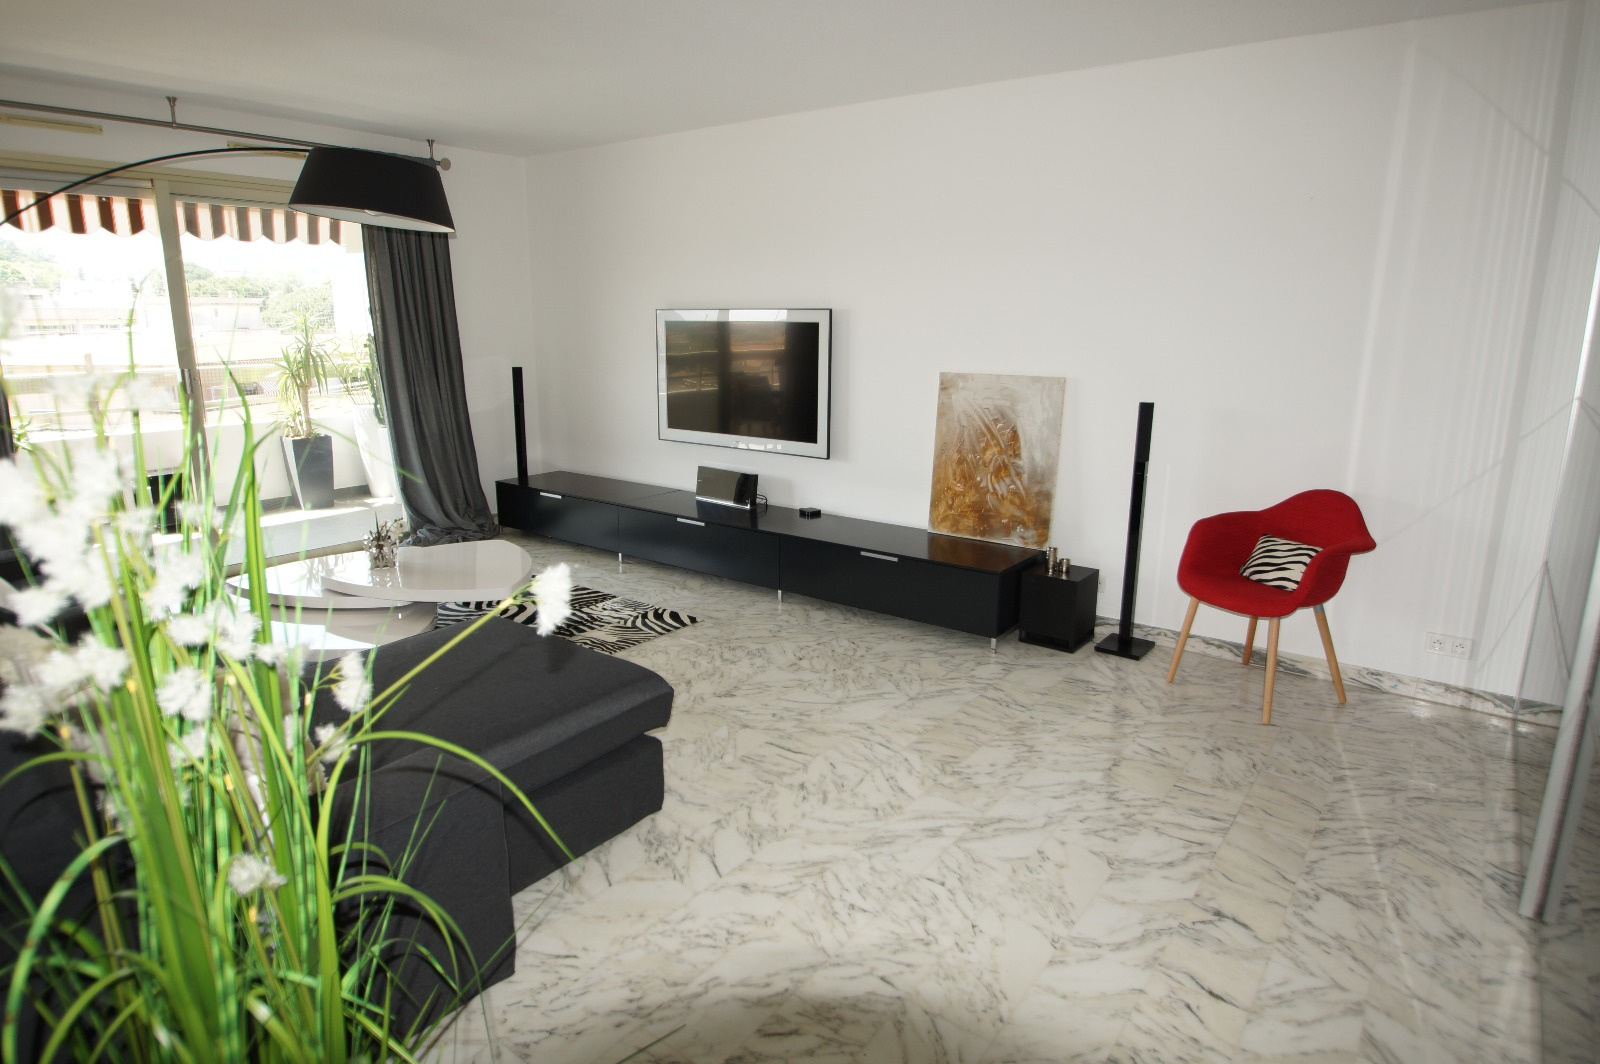 Vence Center, beautiful top floor apartment, very bright, with a beautiful view